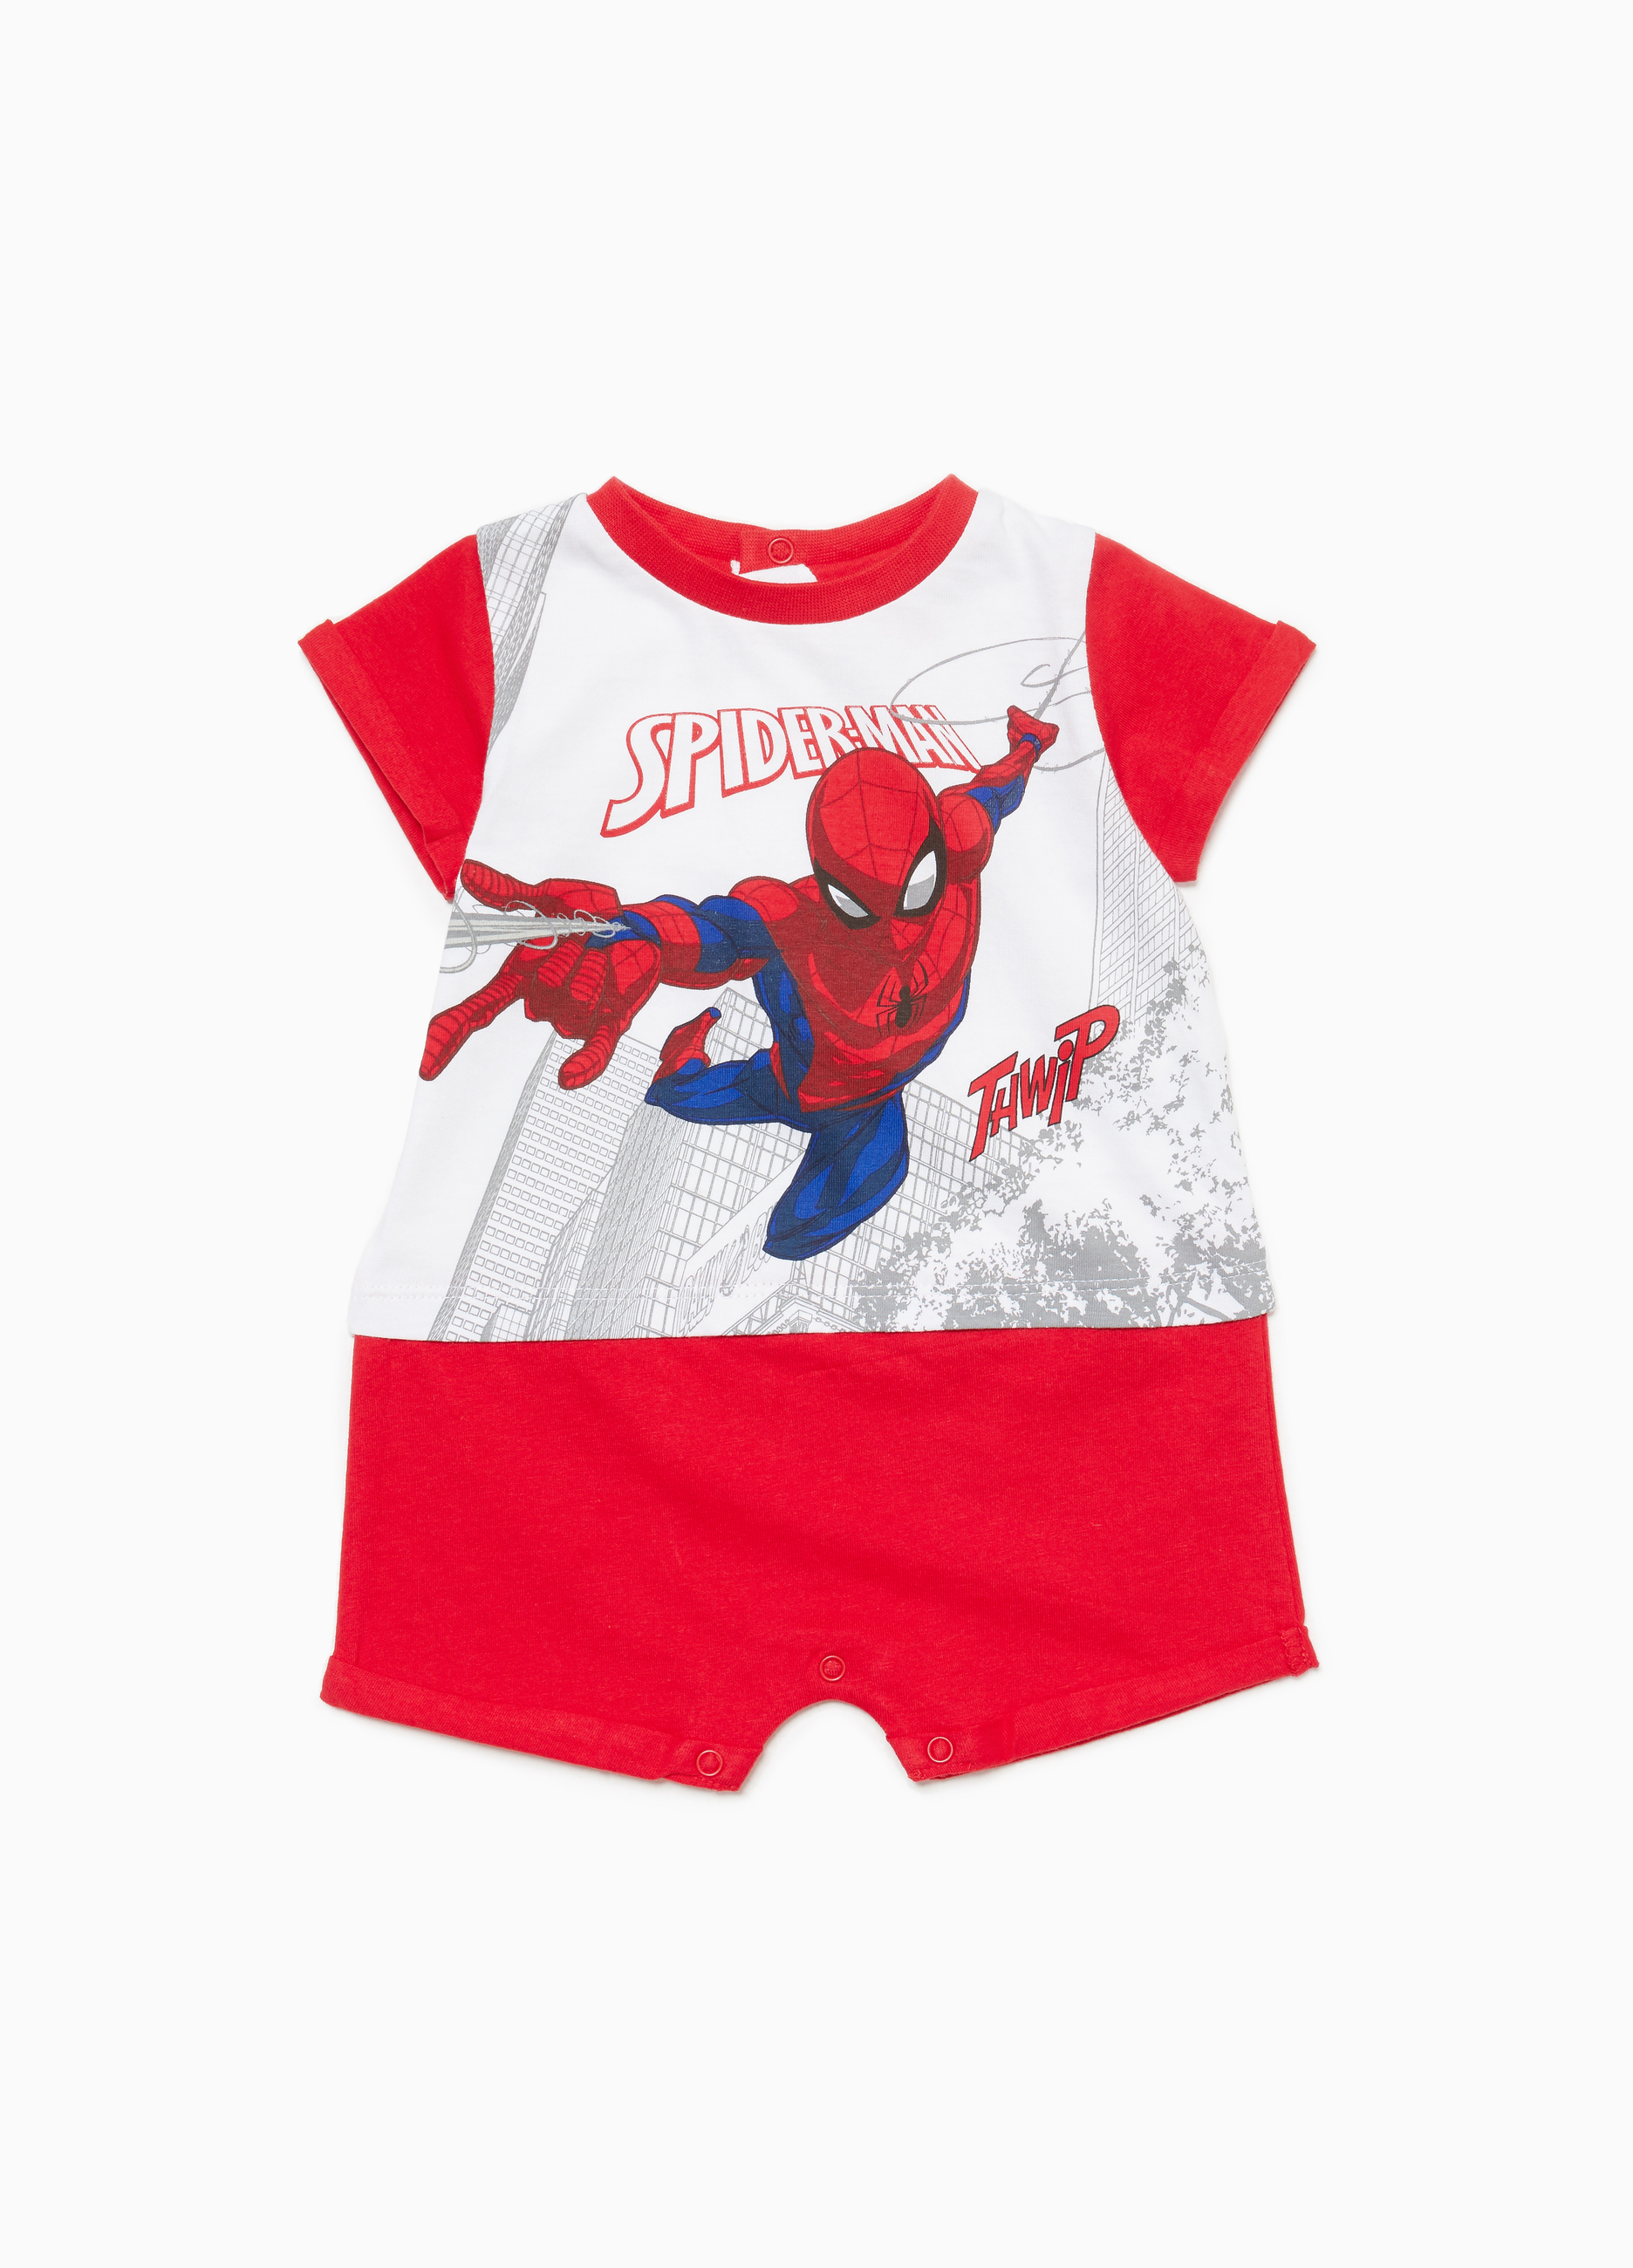 Marvel Baby Clothes Nz